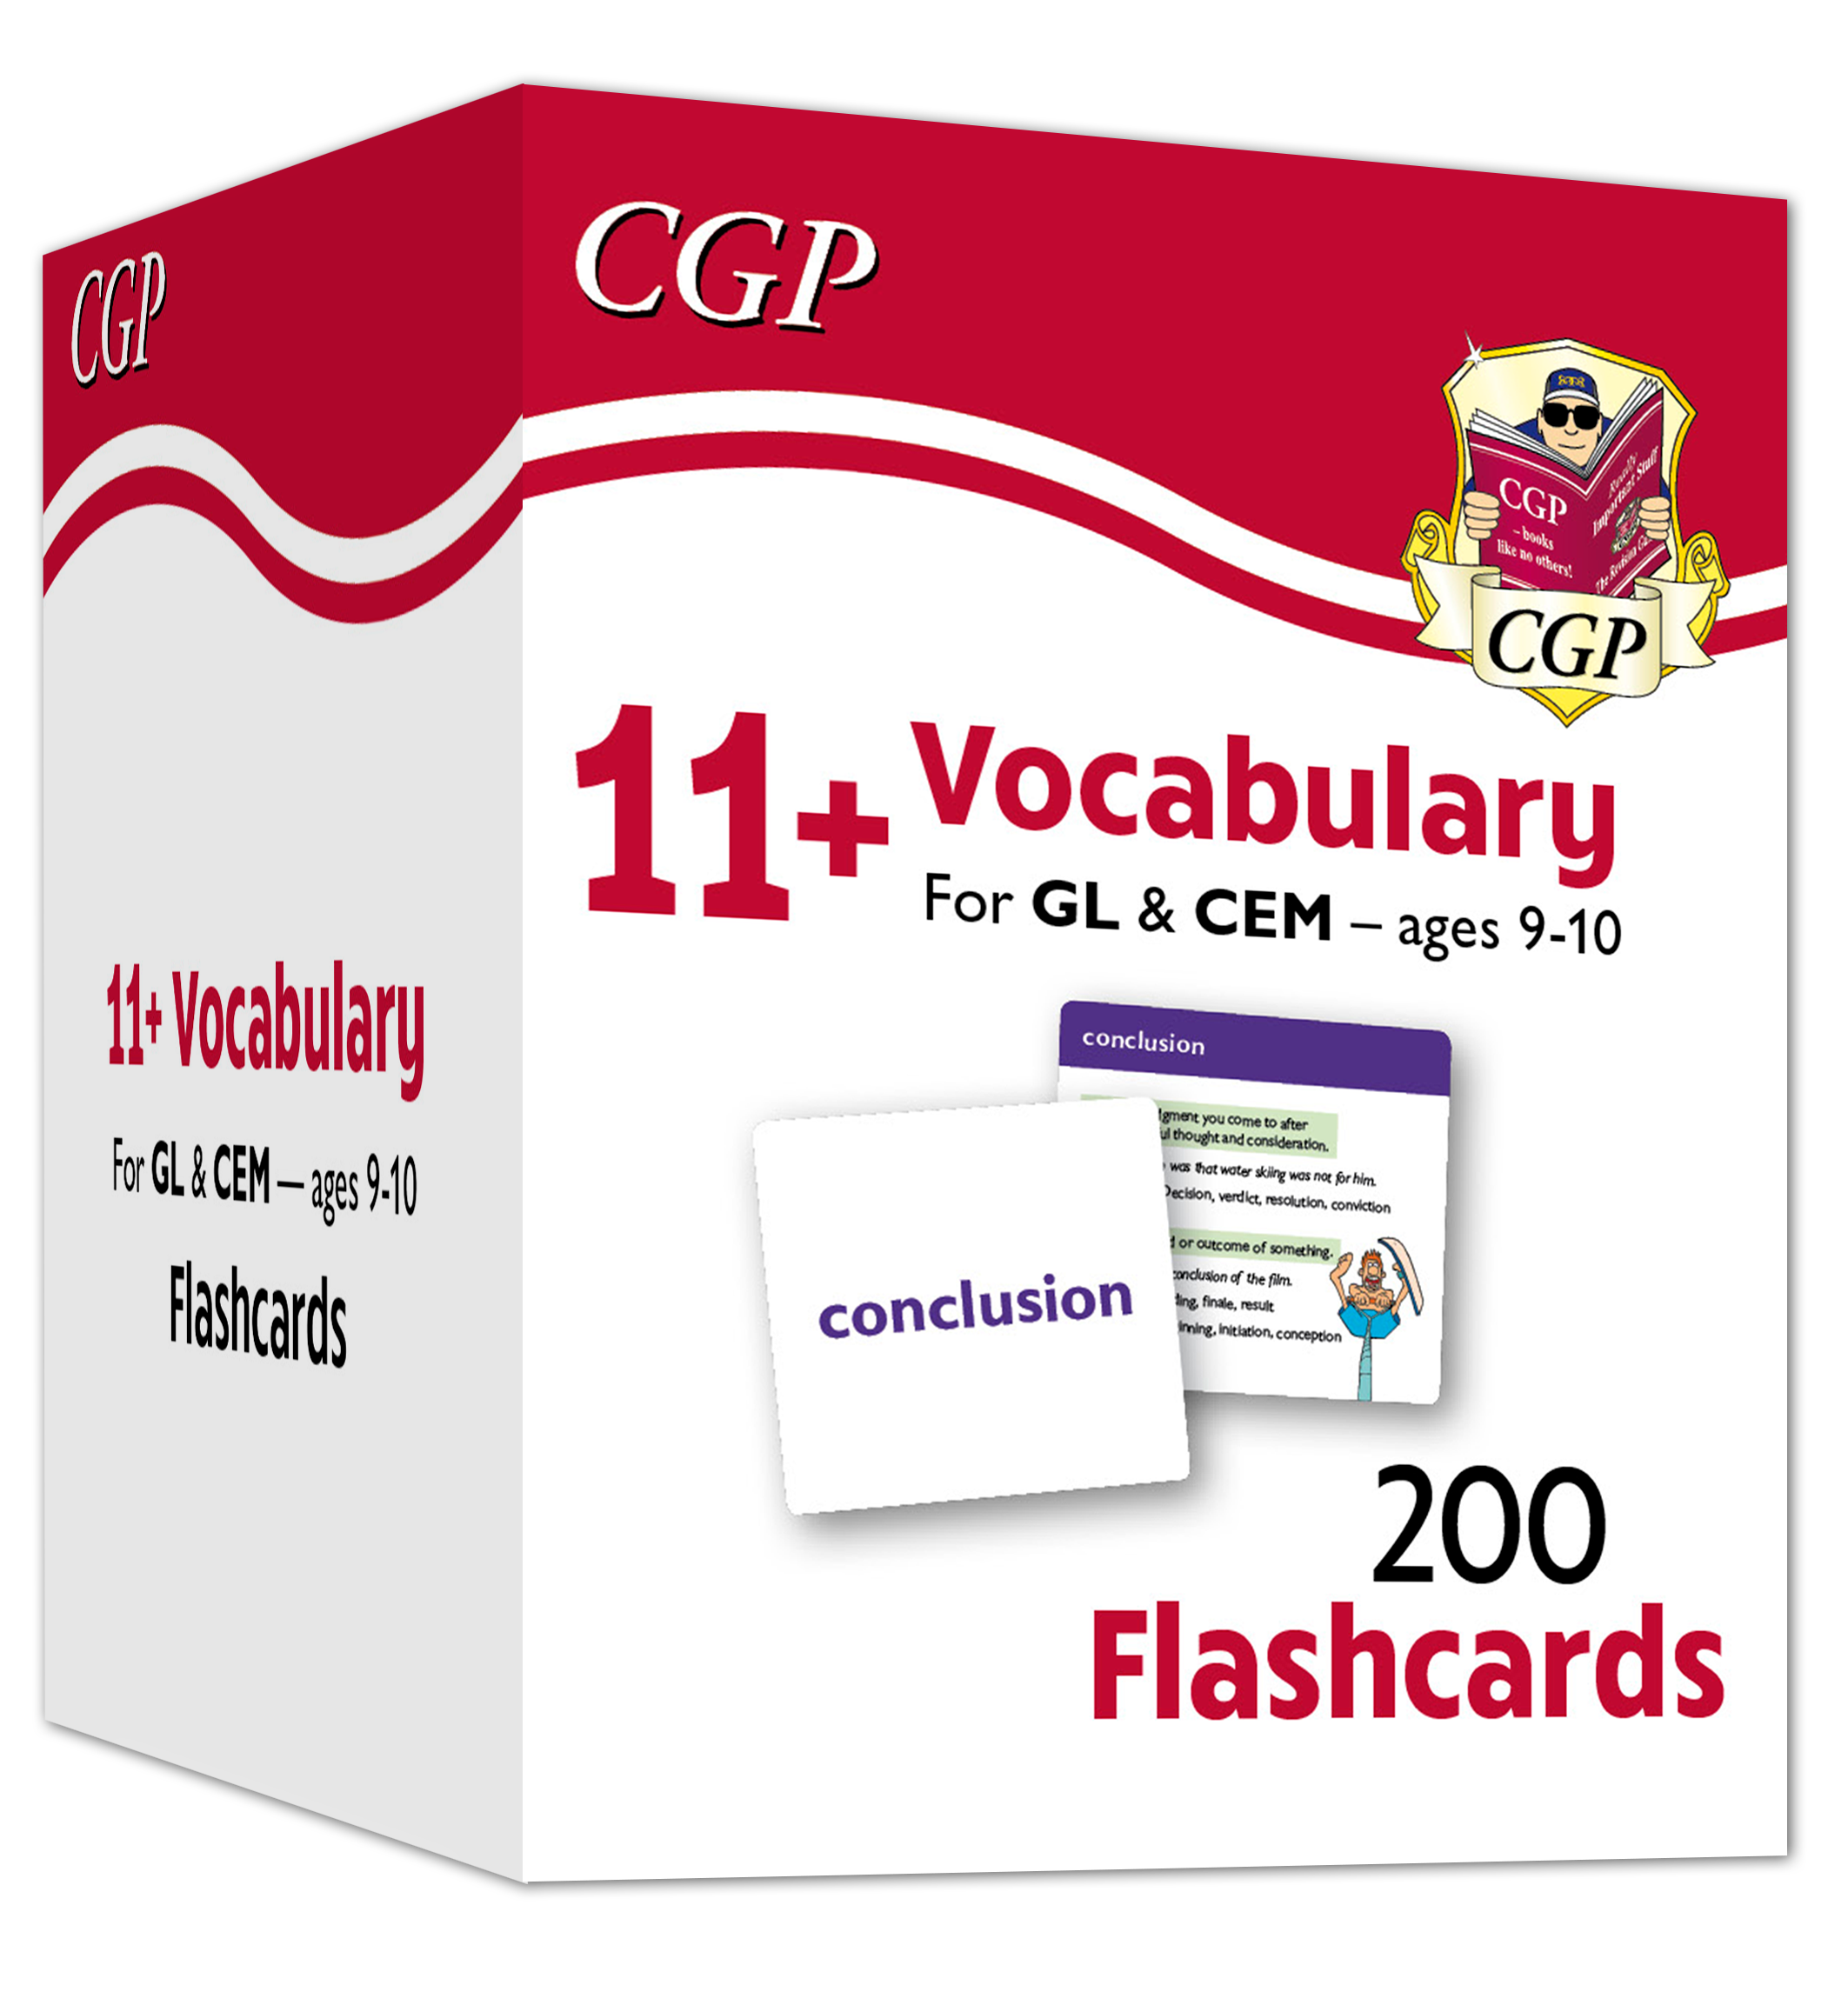 E5VFE1 - New 11+ Vocabulary Flashcards - Ages 9-10